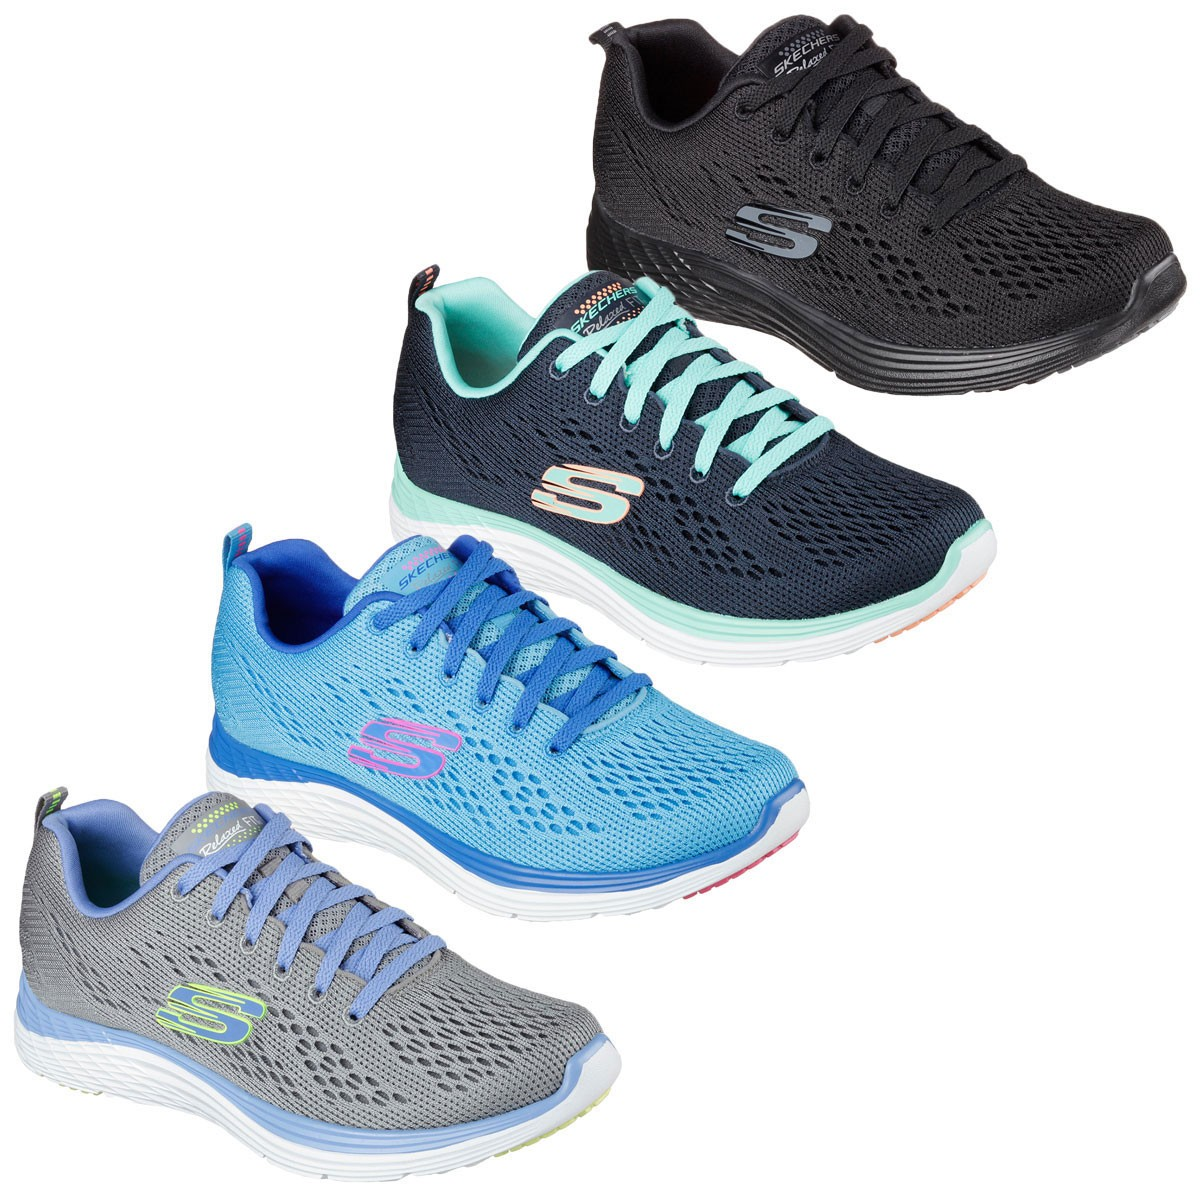 eaa3ad49f4ff Home · Women  Skechers Womens Valeris - Backstage Pass Running Shoes.    Back. 12221